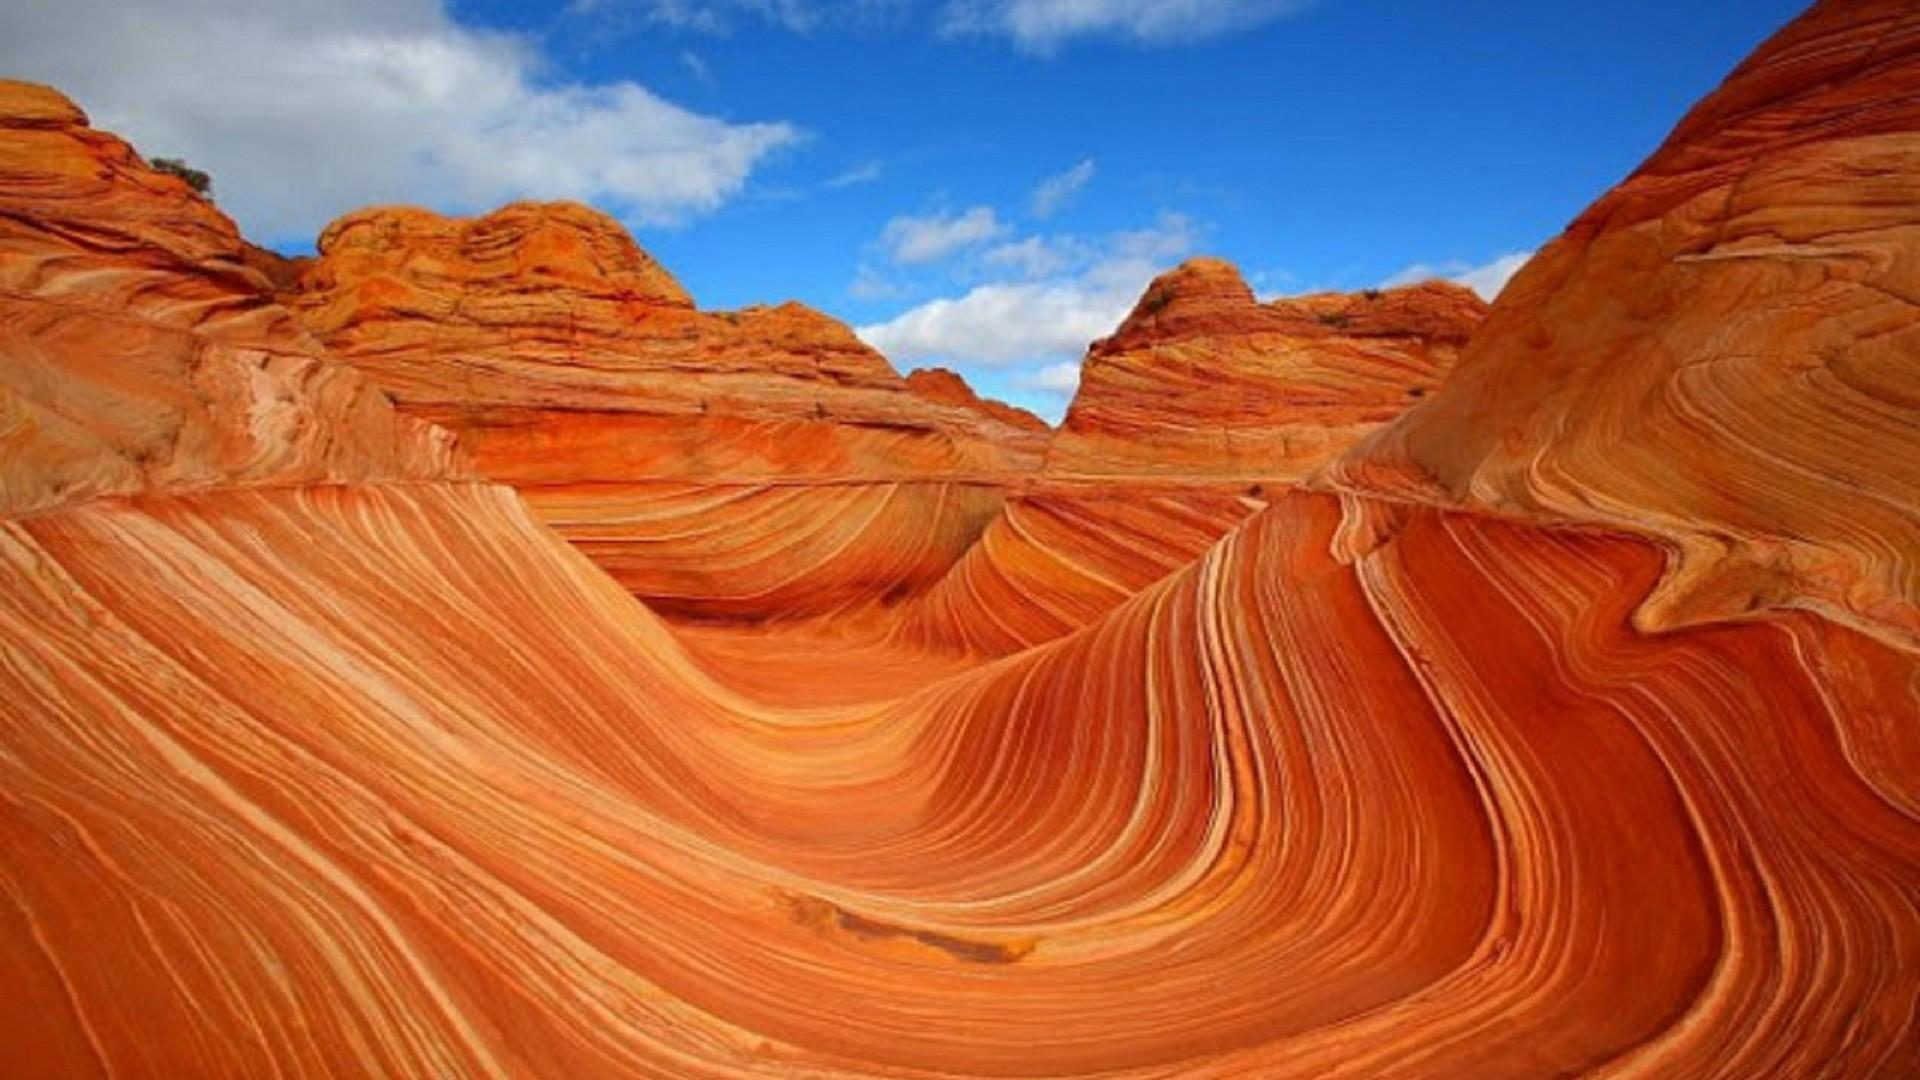 Coyote Buttes Arizona Wallpapers | Imgnooz.com